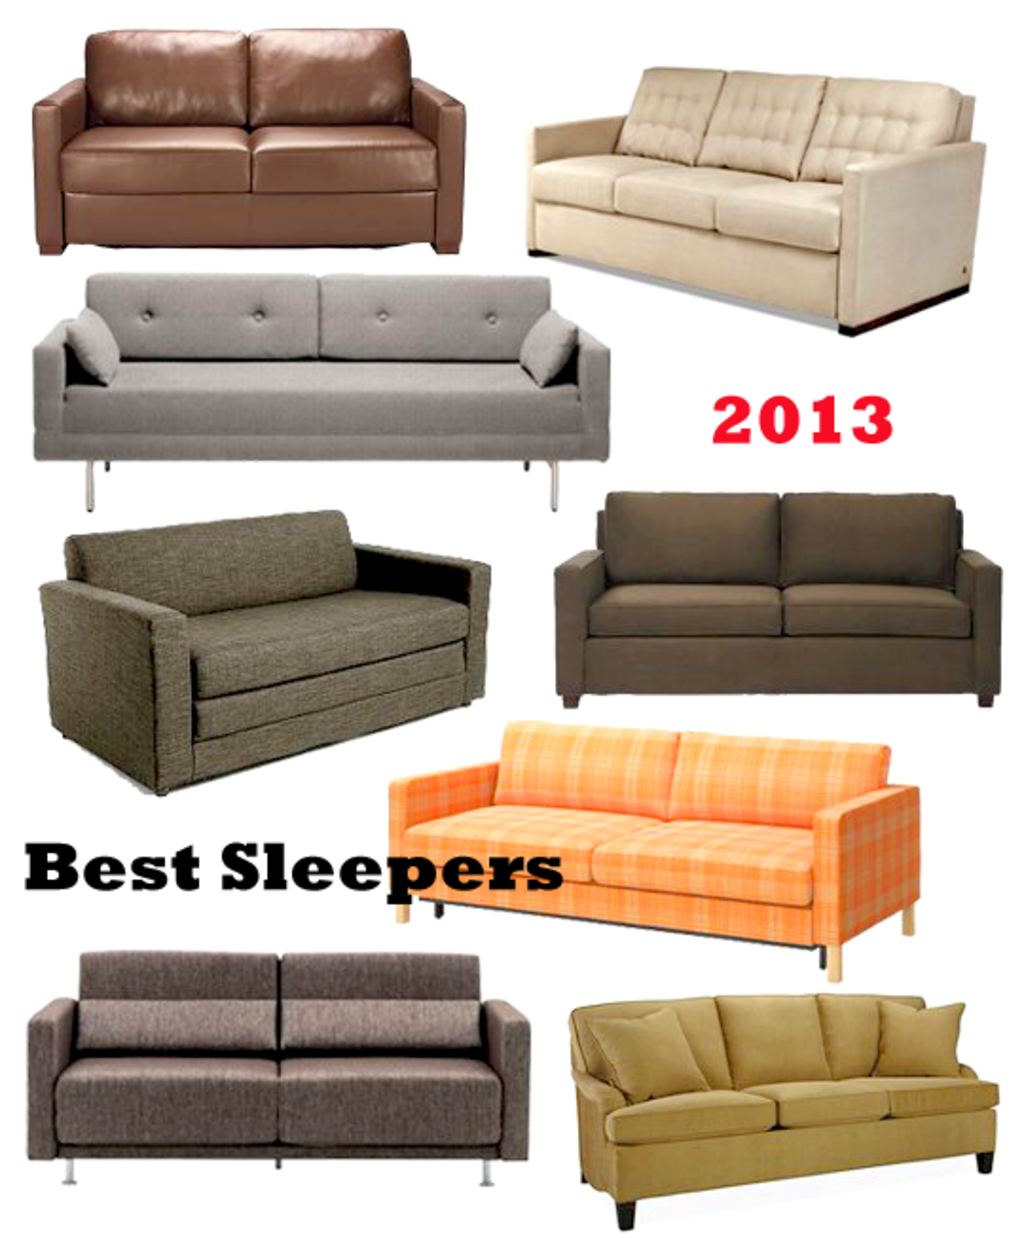 16 Best Sleeper Sofas Amp Sofa Beds 2013 Apartment Therapy